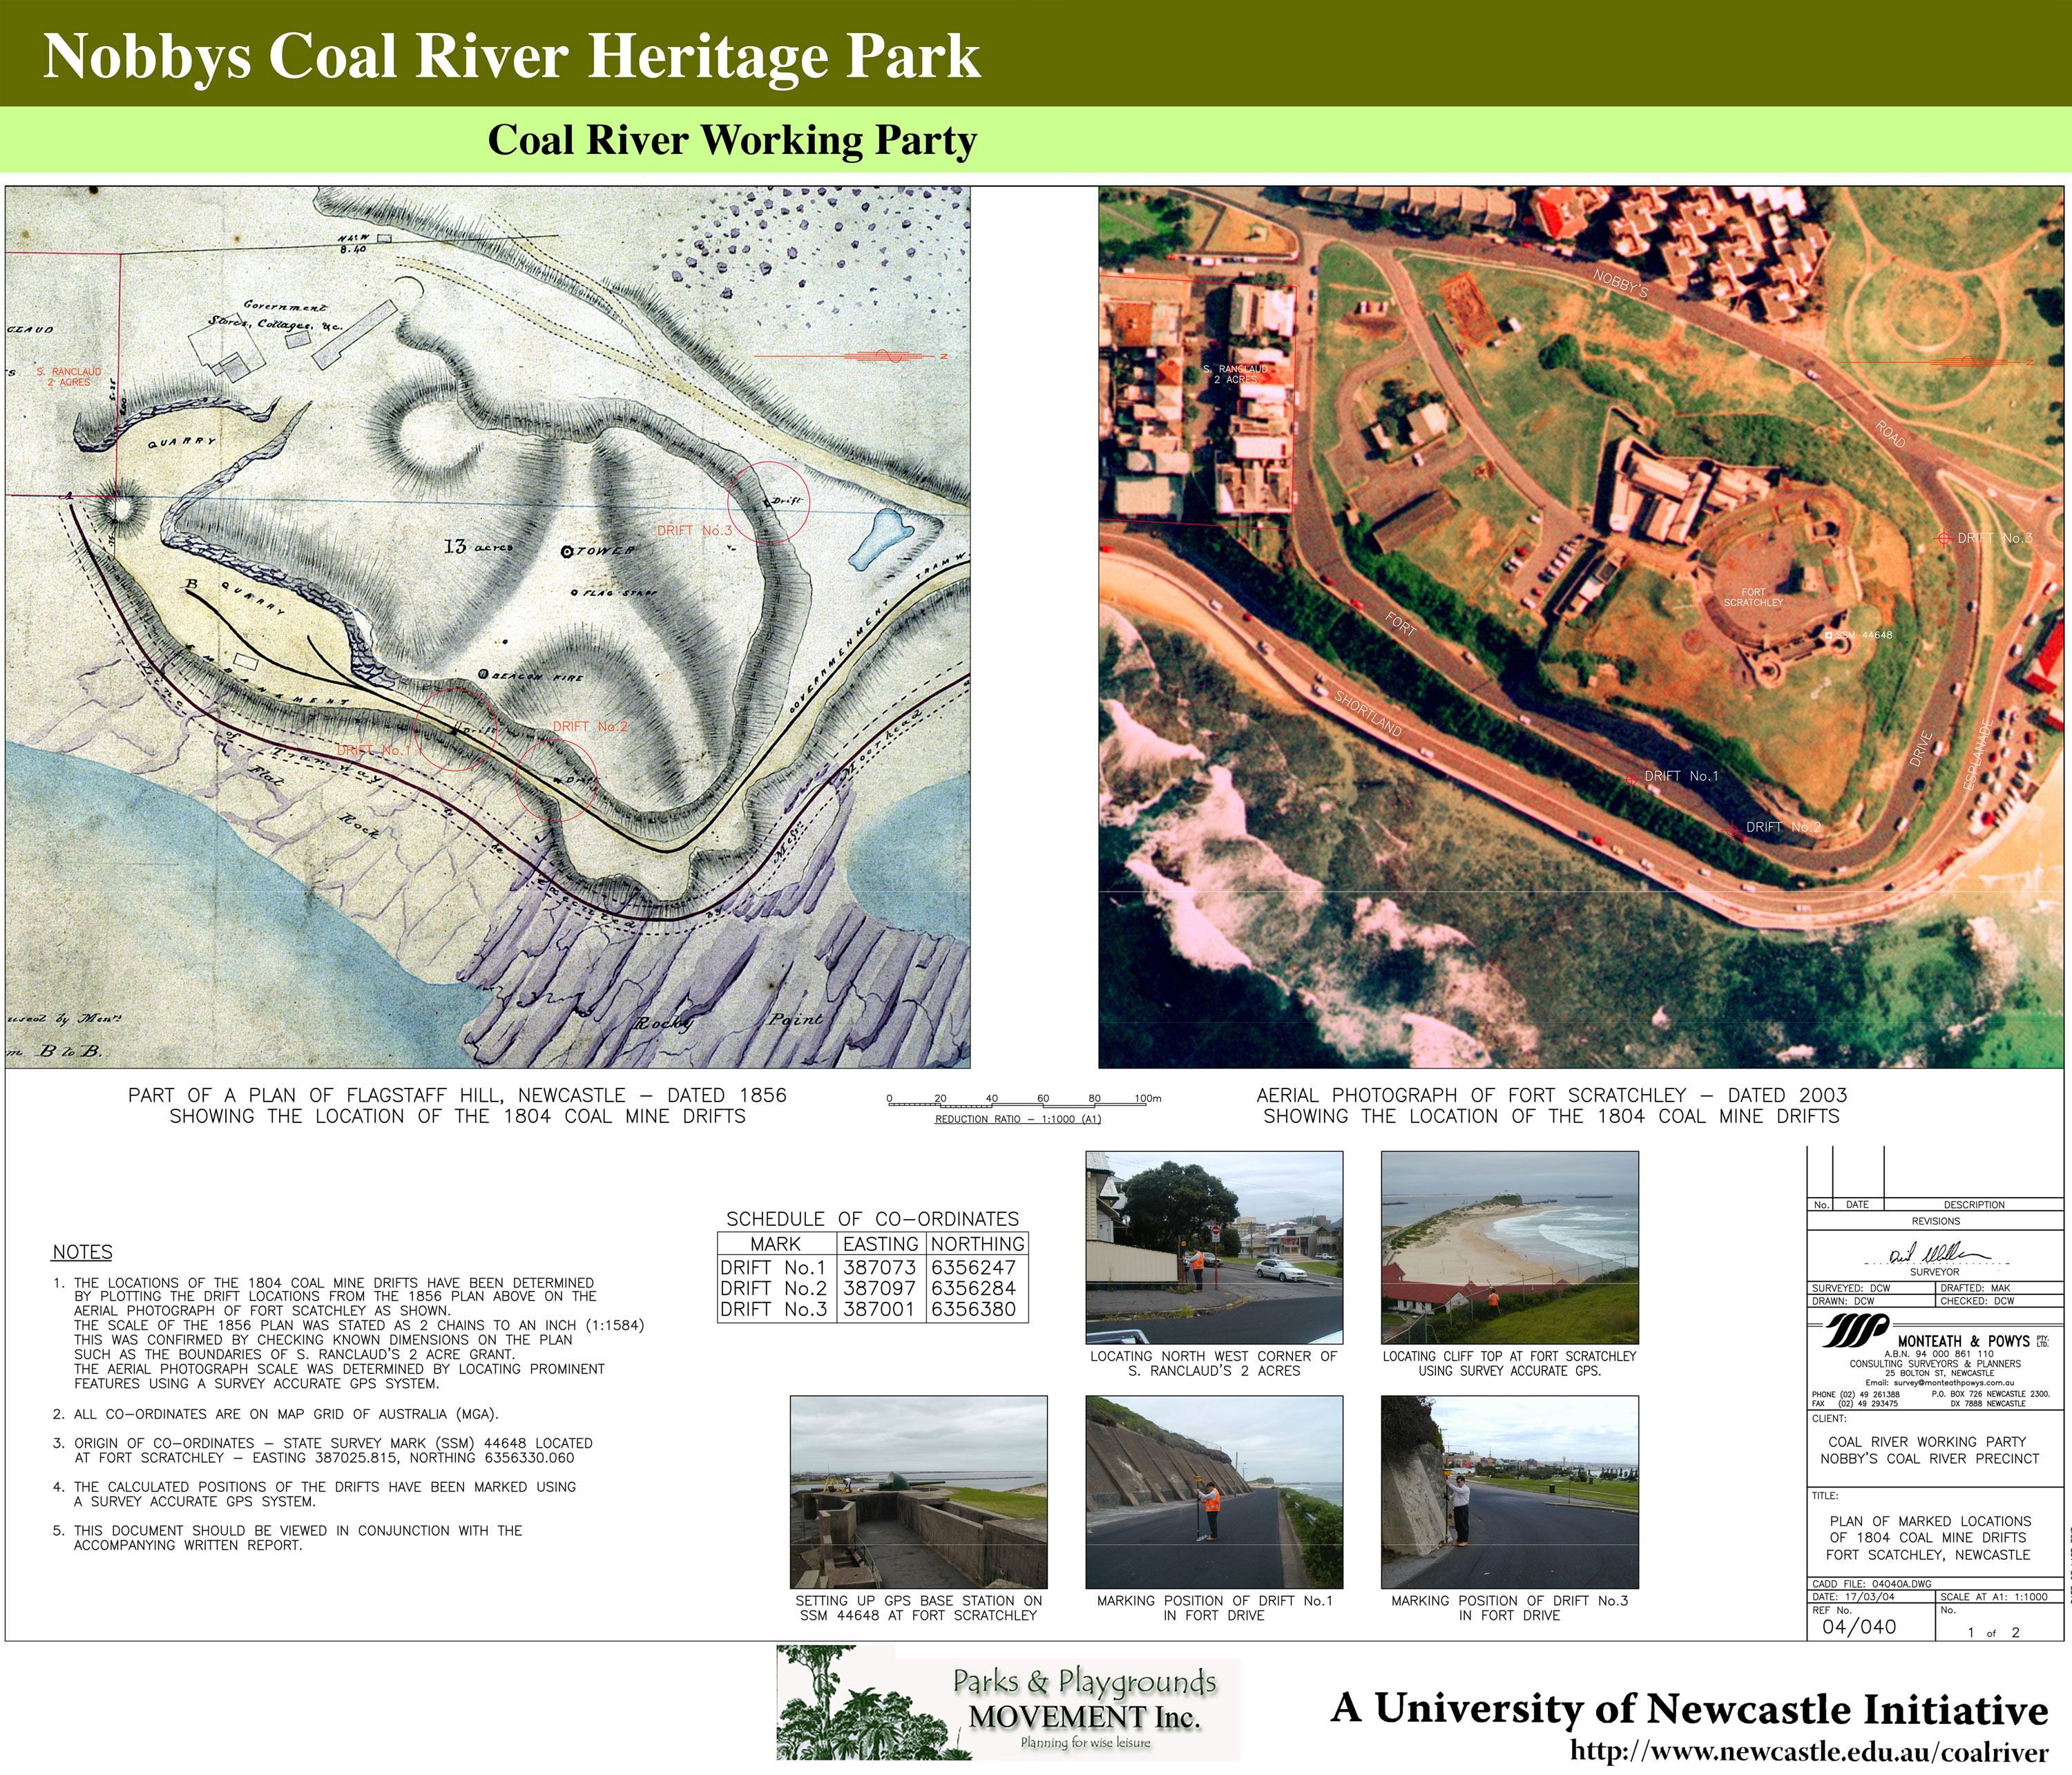 Coal River Working Party Poster No. 9 - Milestones - Monteath & Powys Overlay